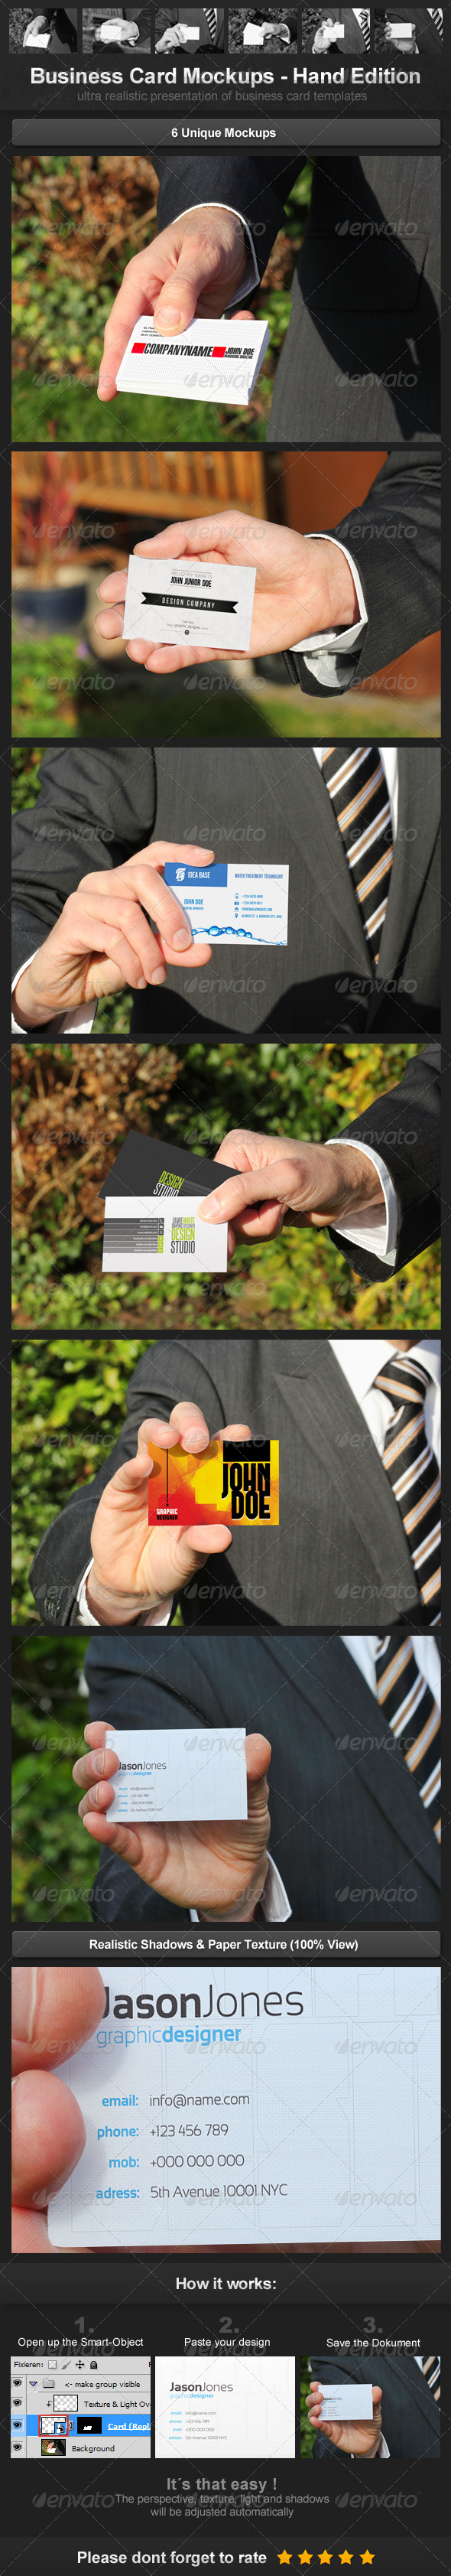 GraphicRiver Business Card Mockups Hand Edition 3553404